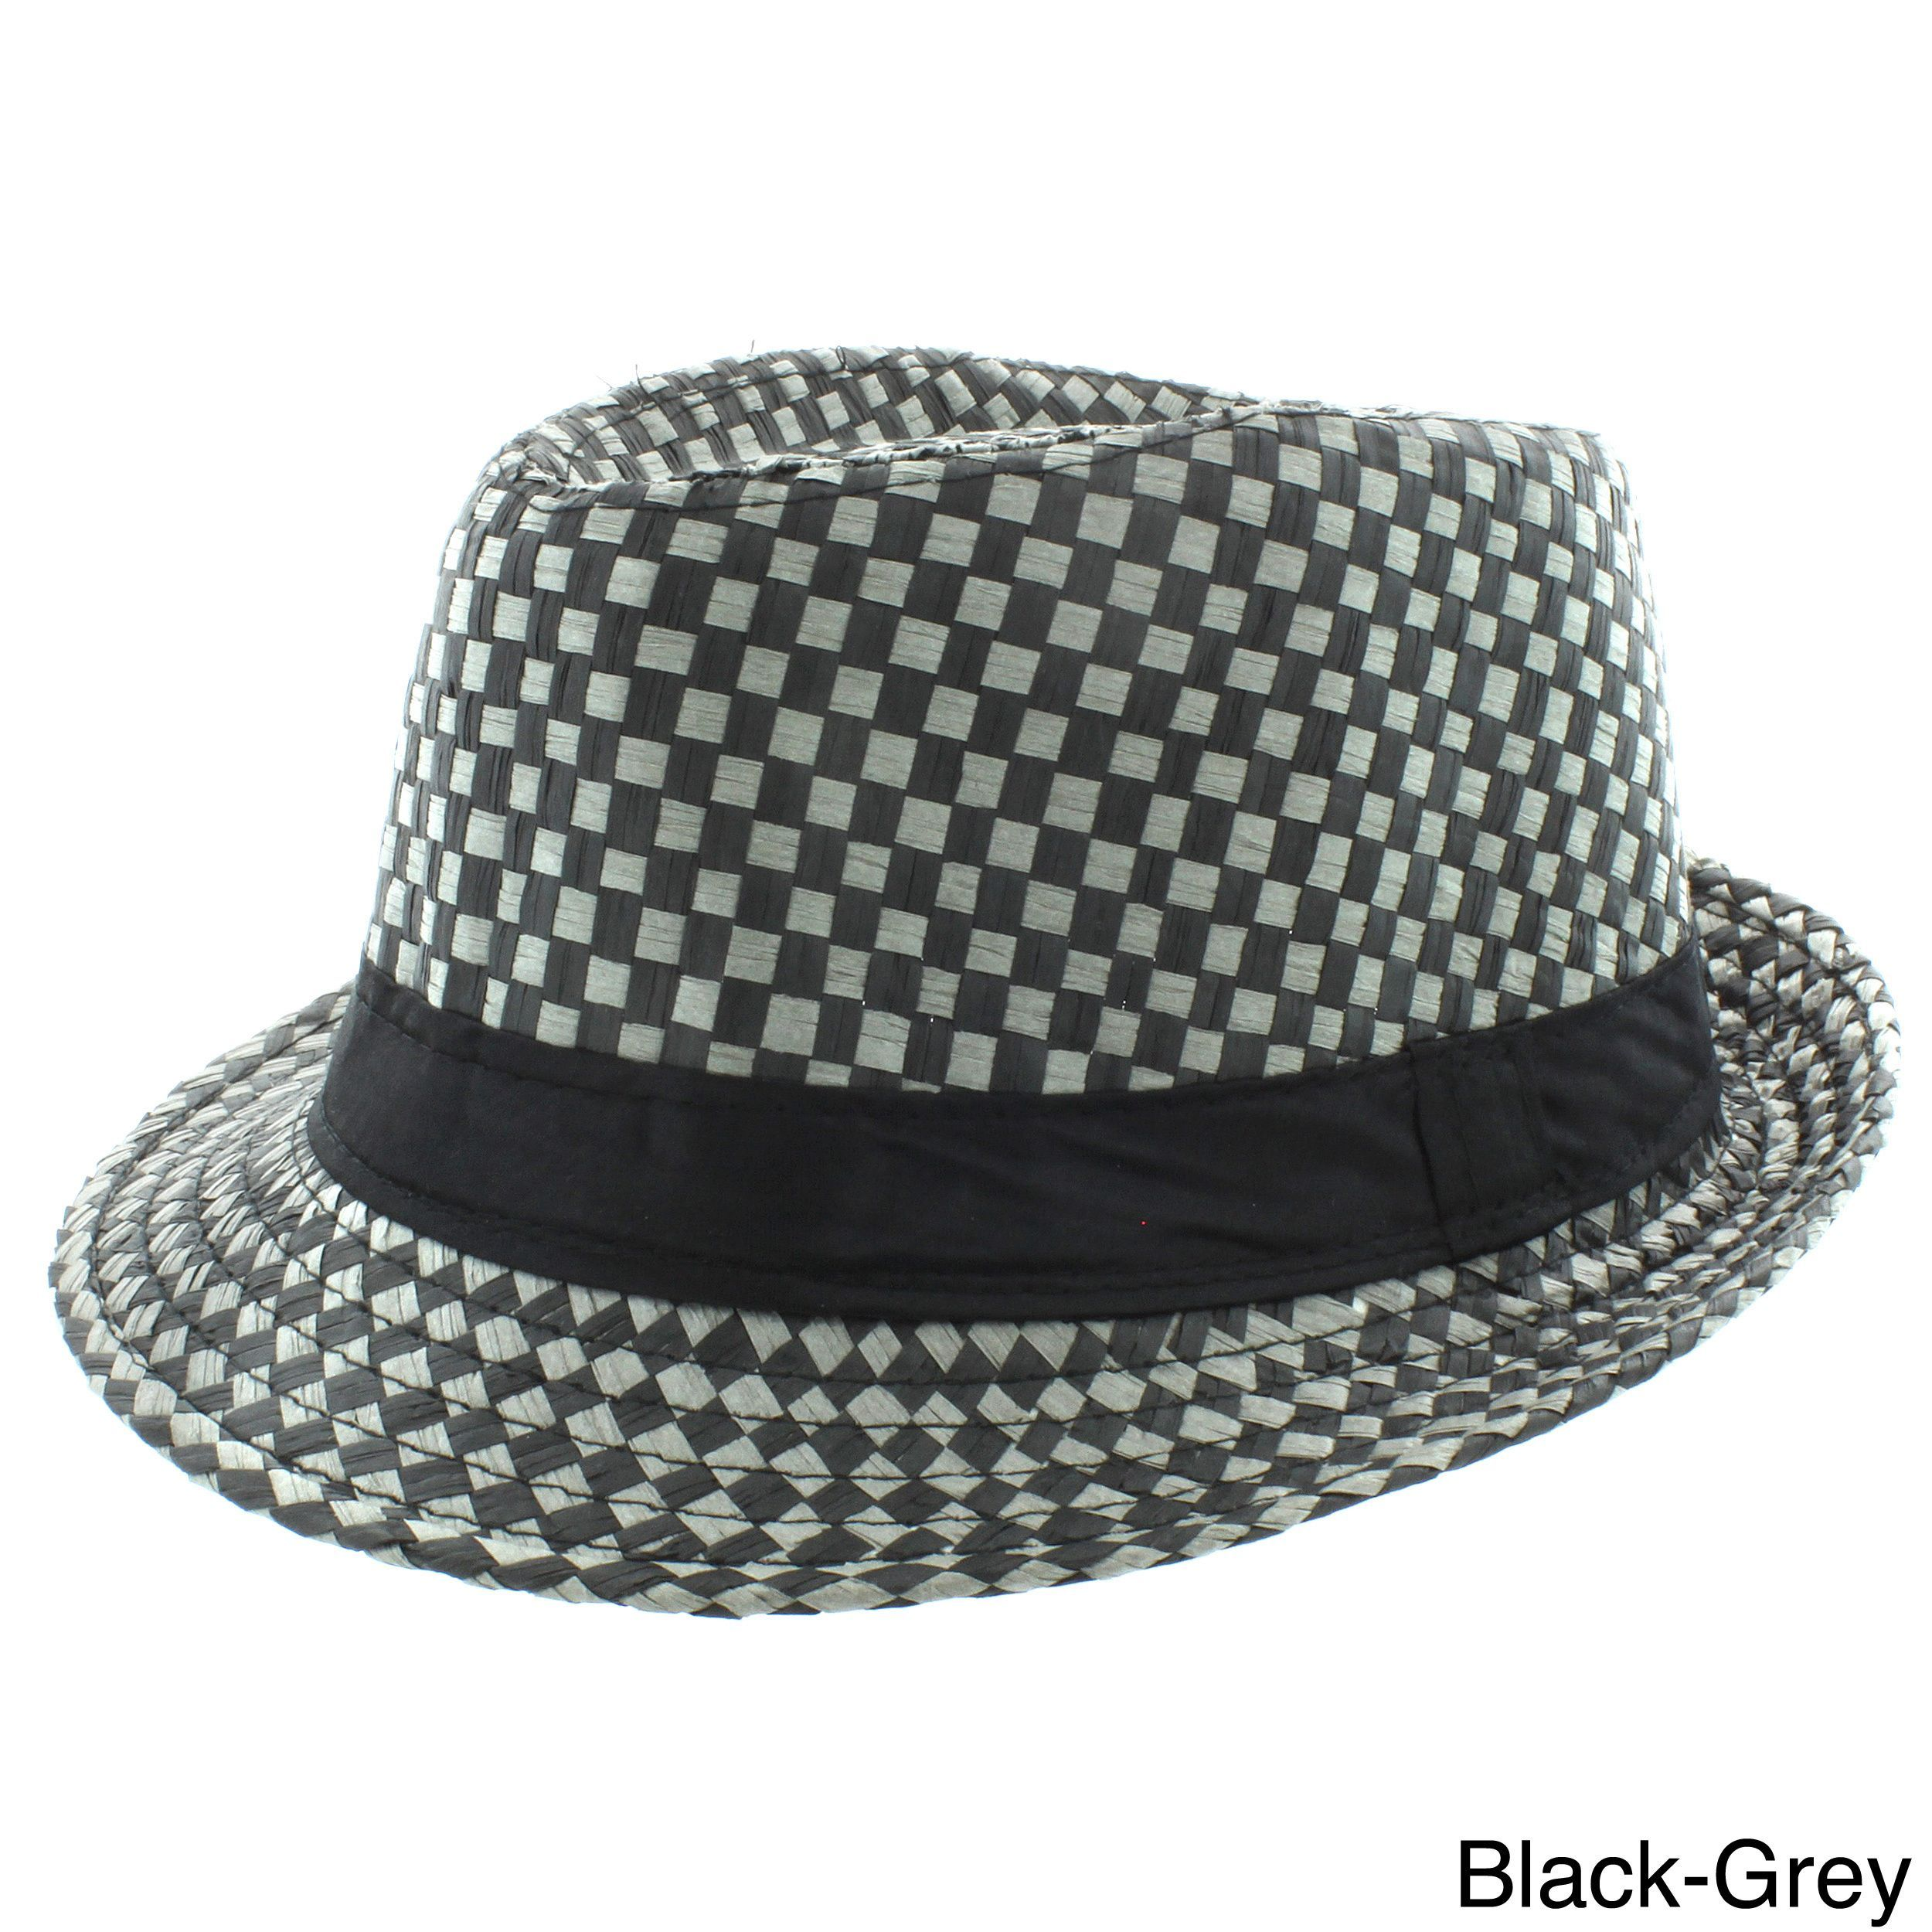 Discussion on this topic: Fedora Hats To Instantly Update Your Look, fedora-hats-to-instantly-update-your-look/